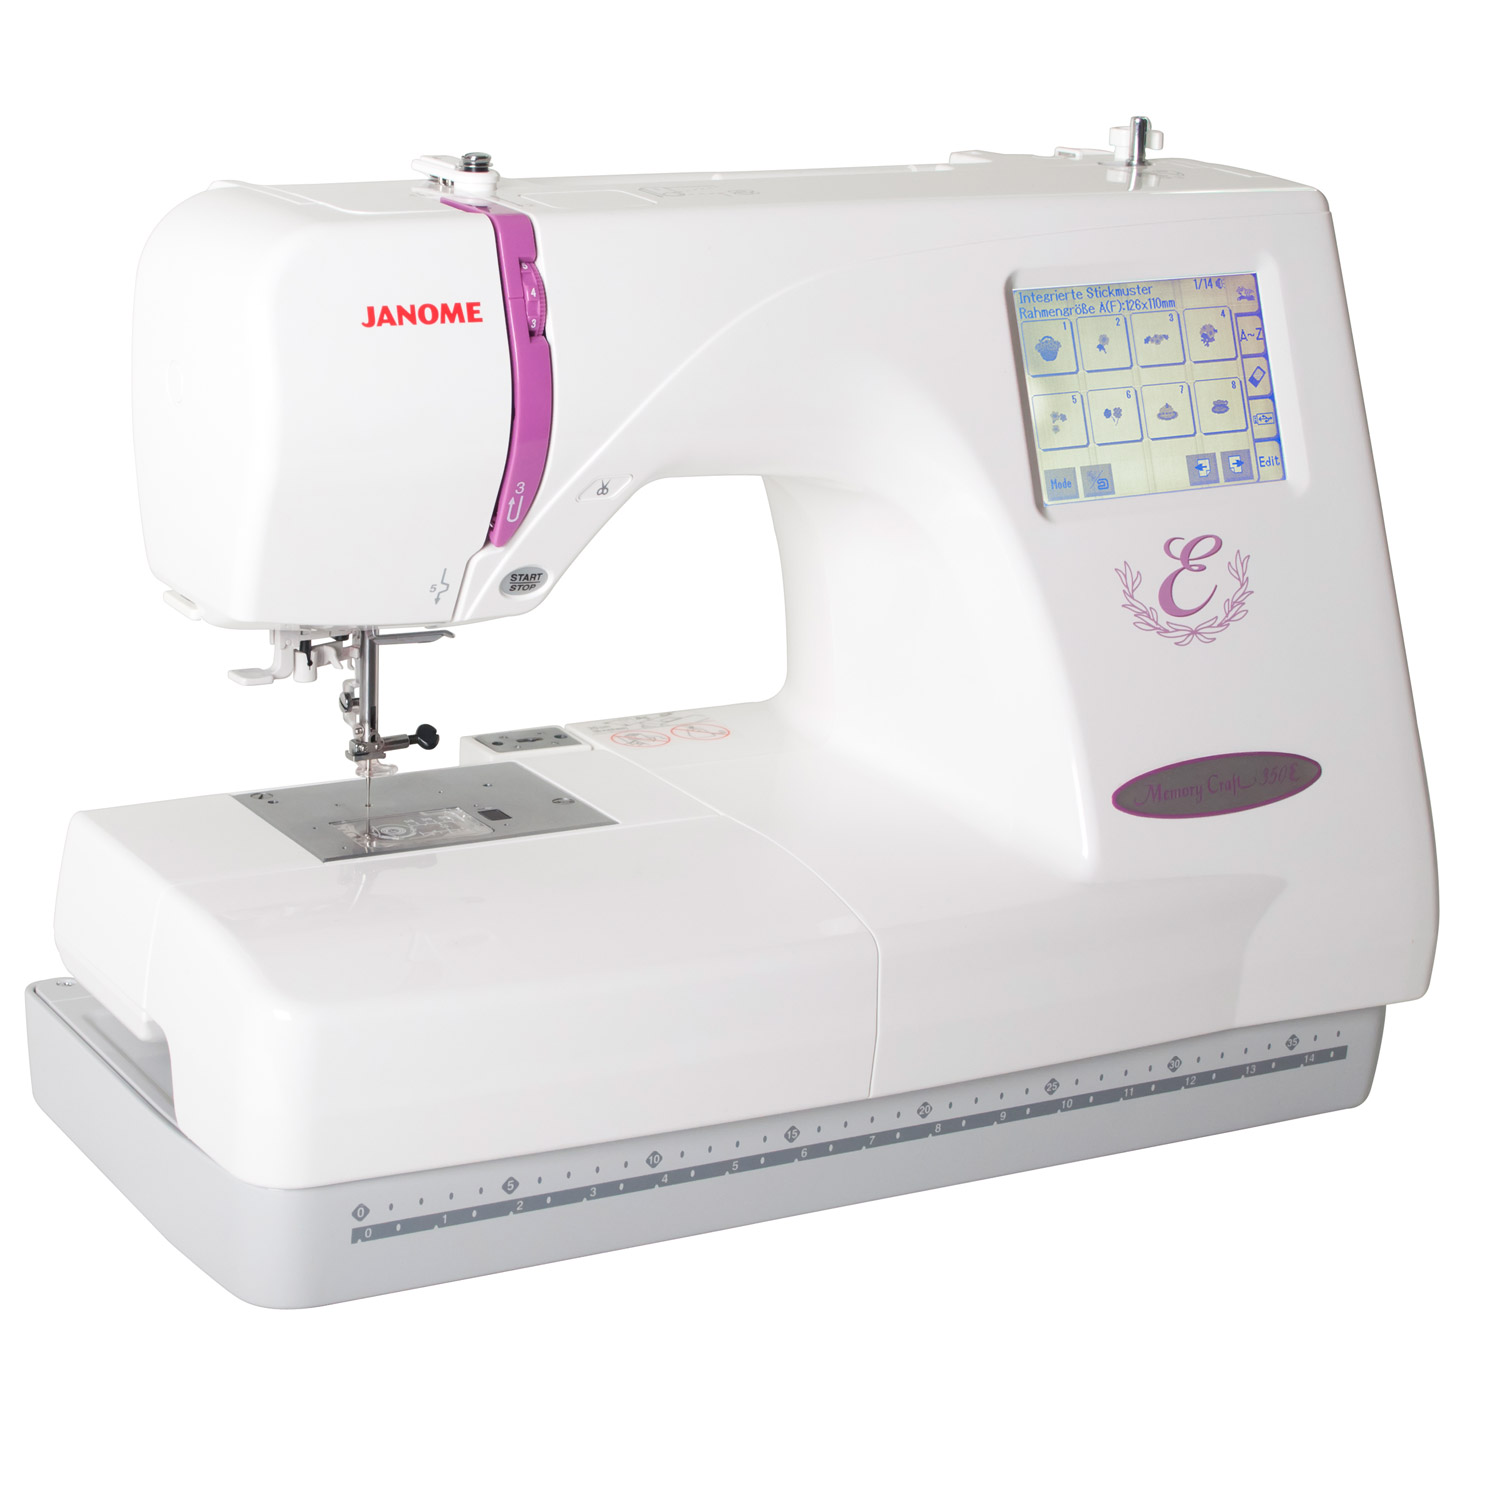 Janome memory craft 6500p - Janome Memory Craft 350e Janome Memory Craft 350e Zoom Pfeile Pdf Download